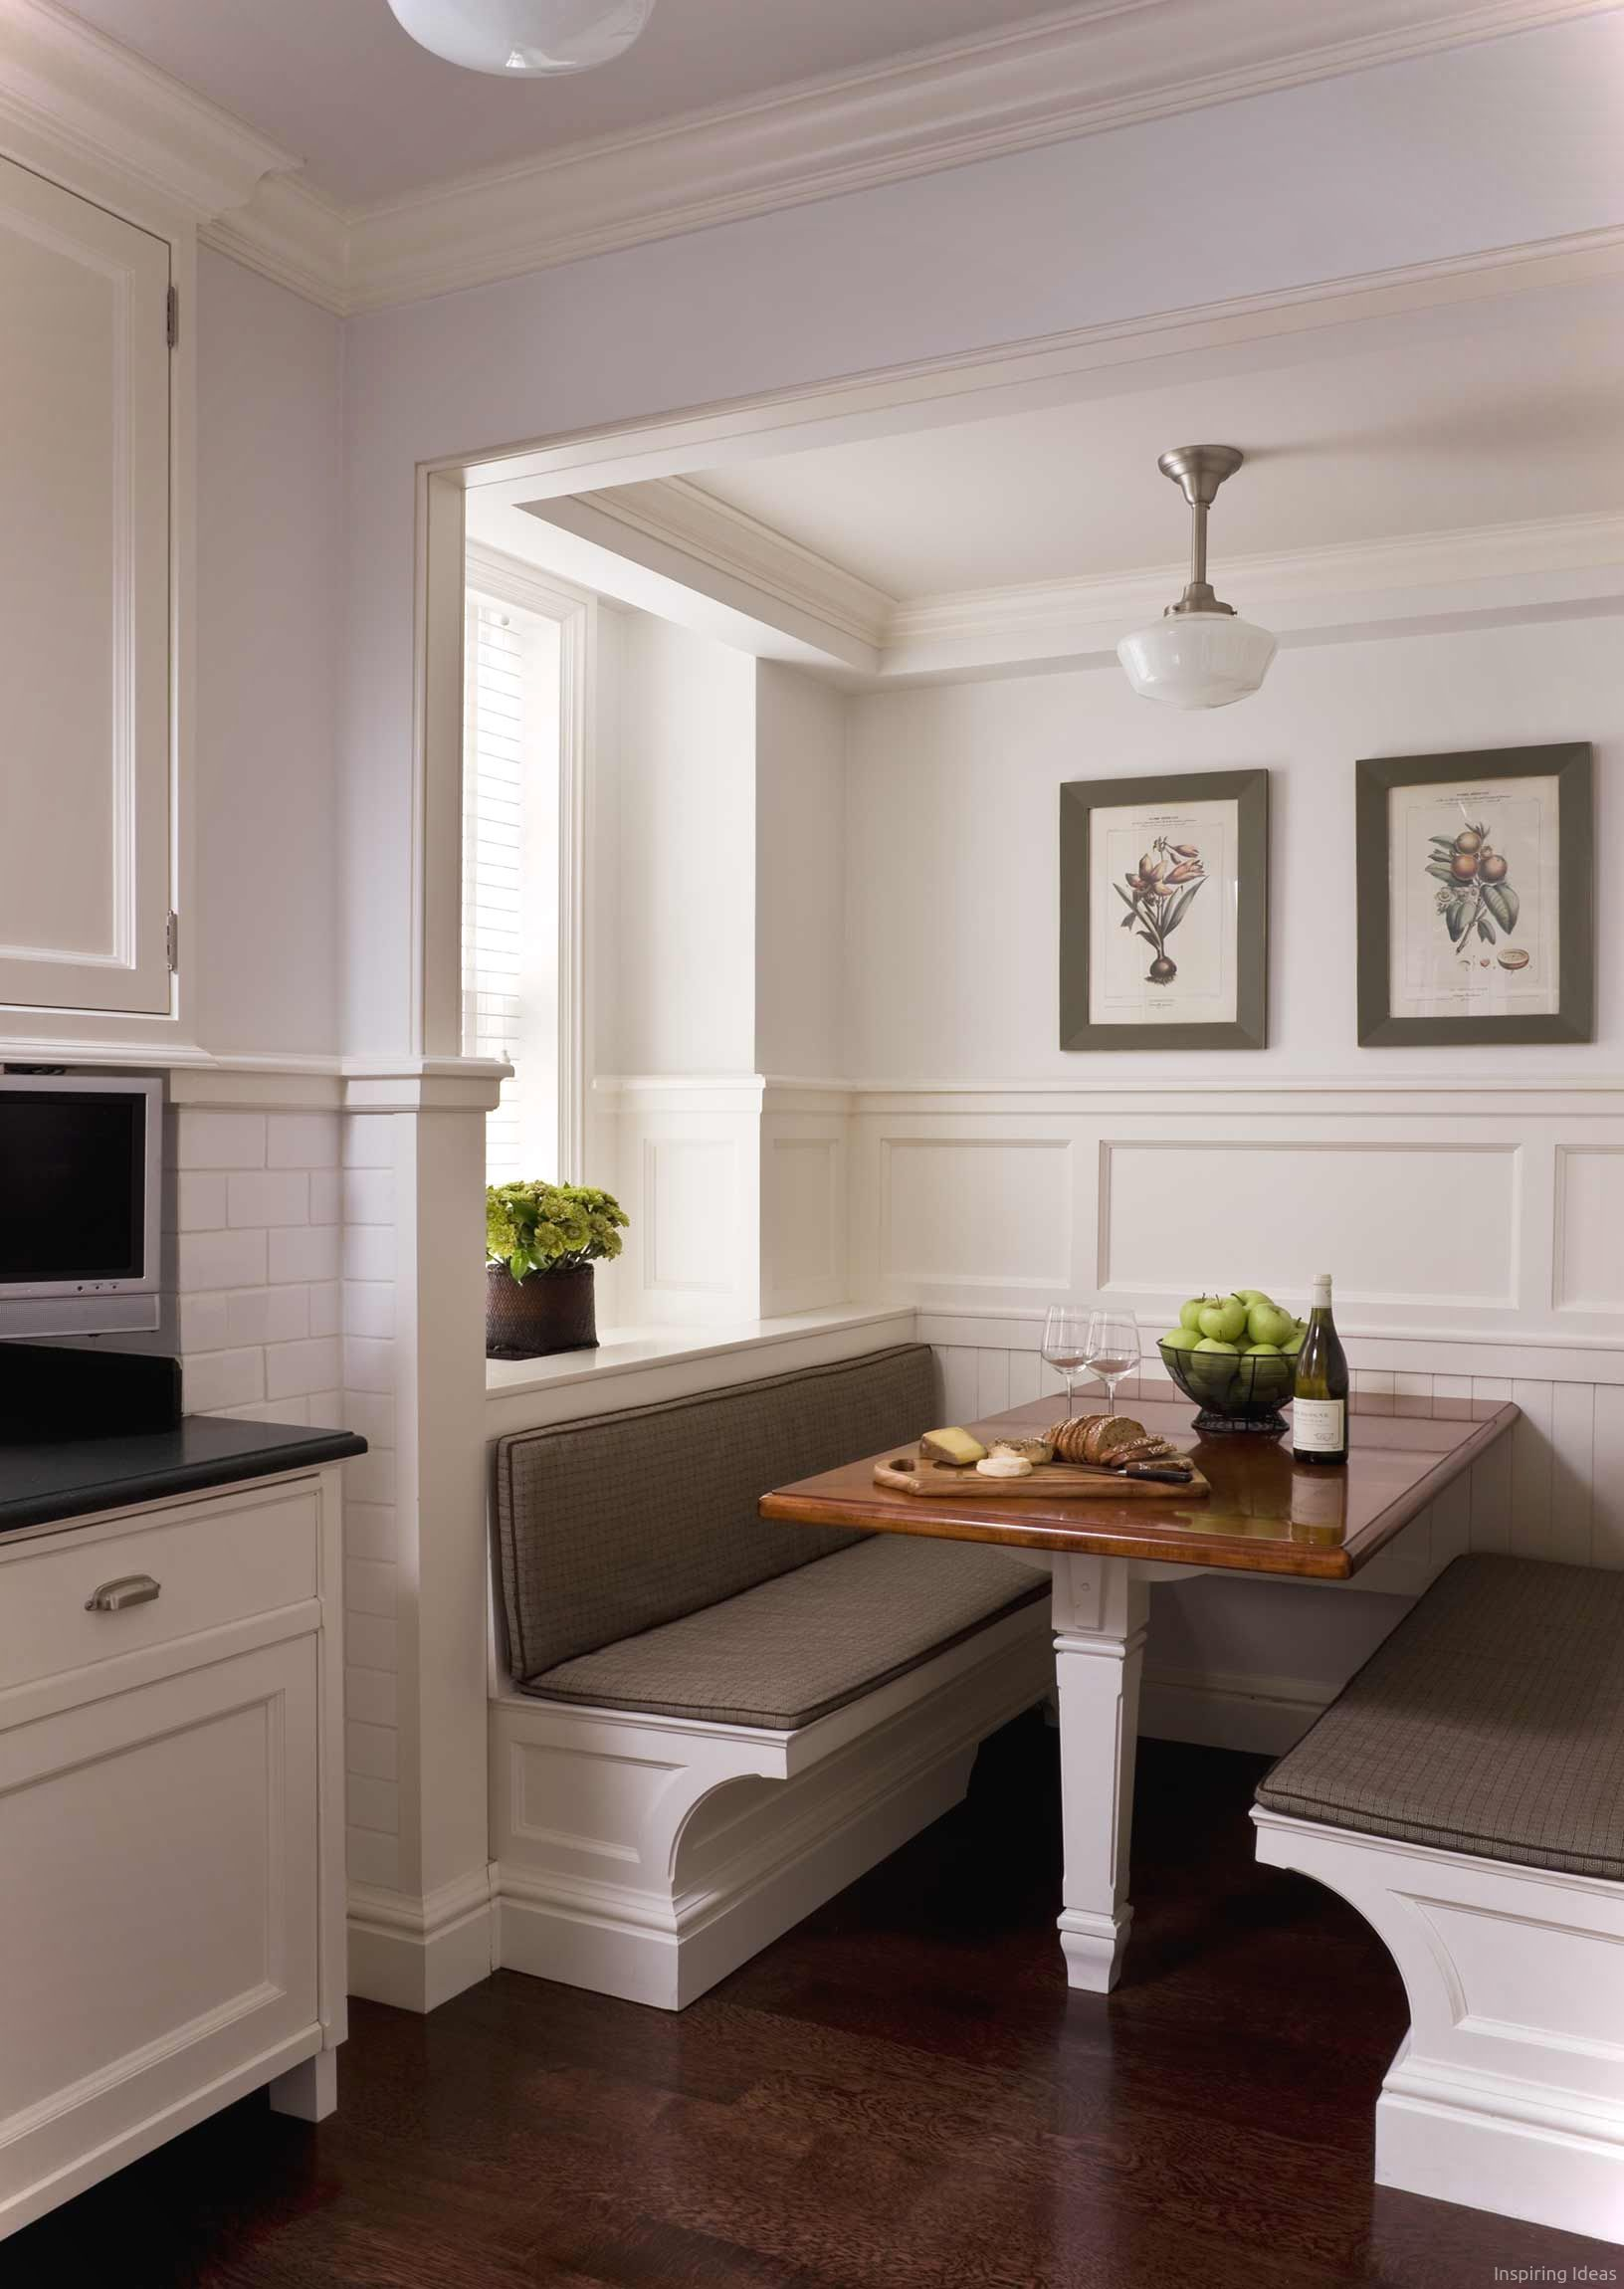 80 nice banquette seating ideas for kitchen